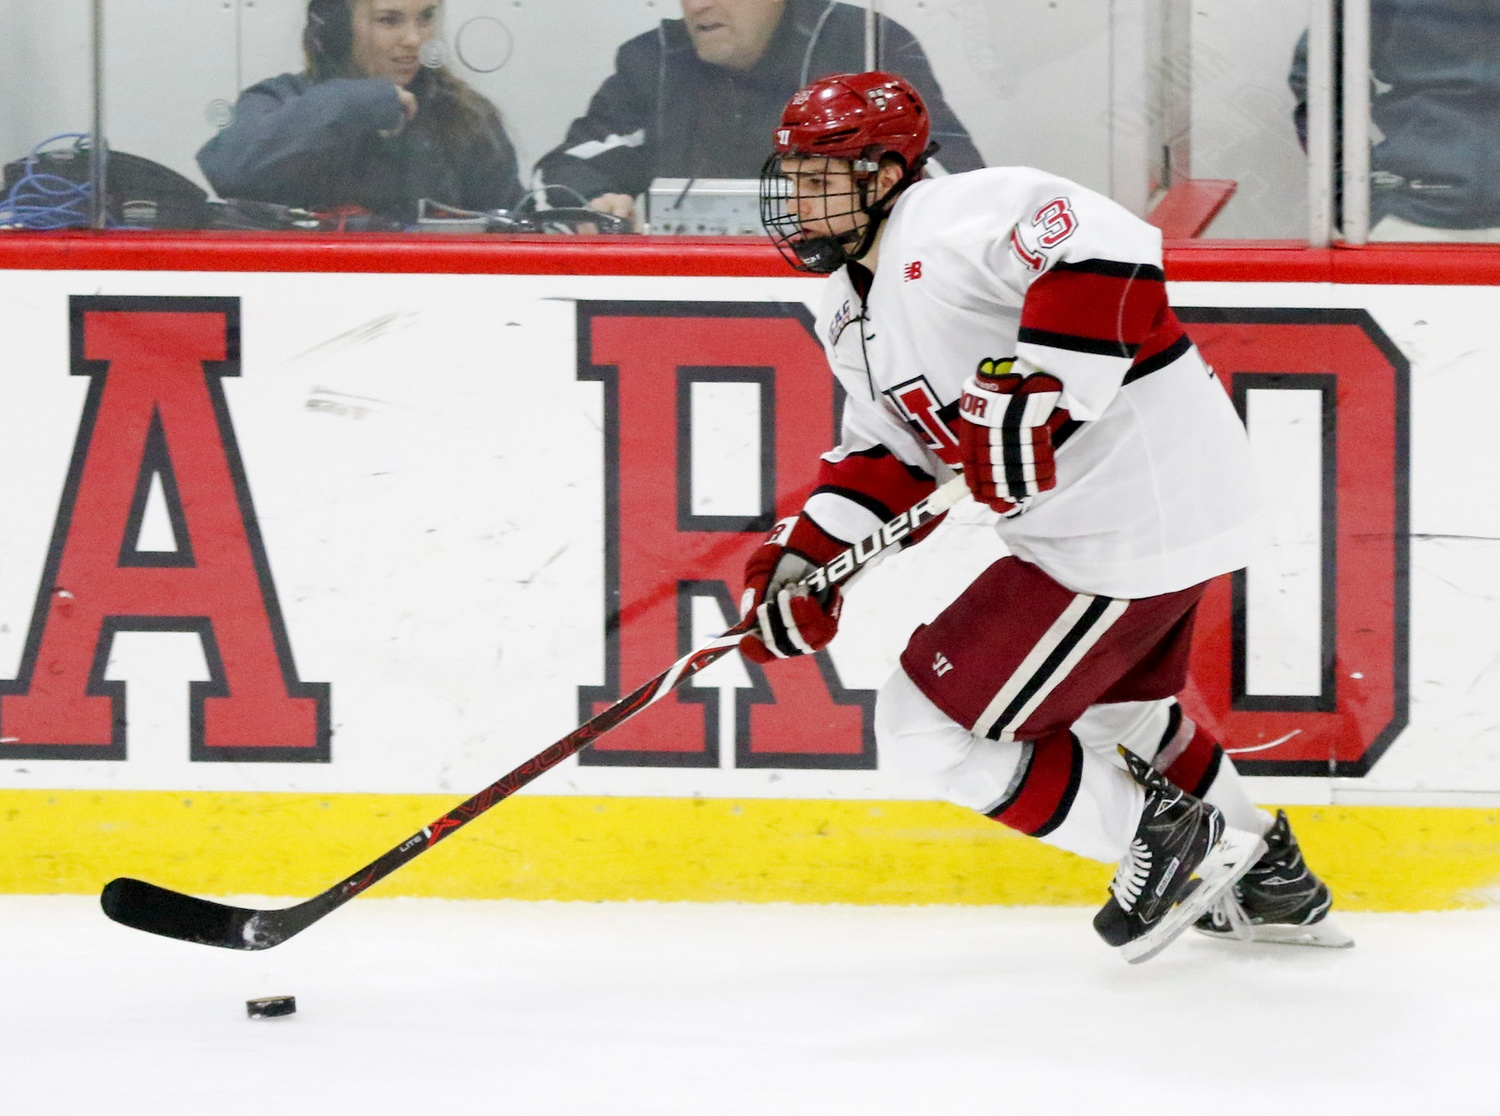 Preview: Harvard Begins Beanpot Defense Vs. BU